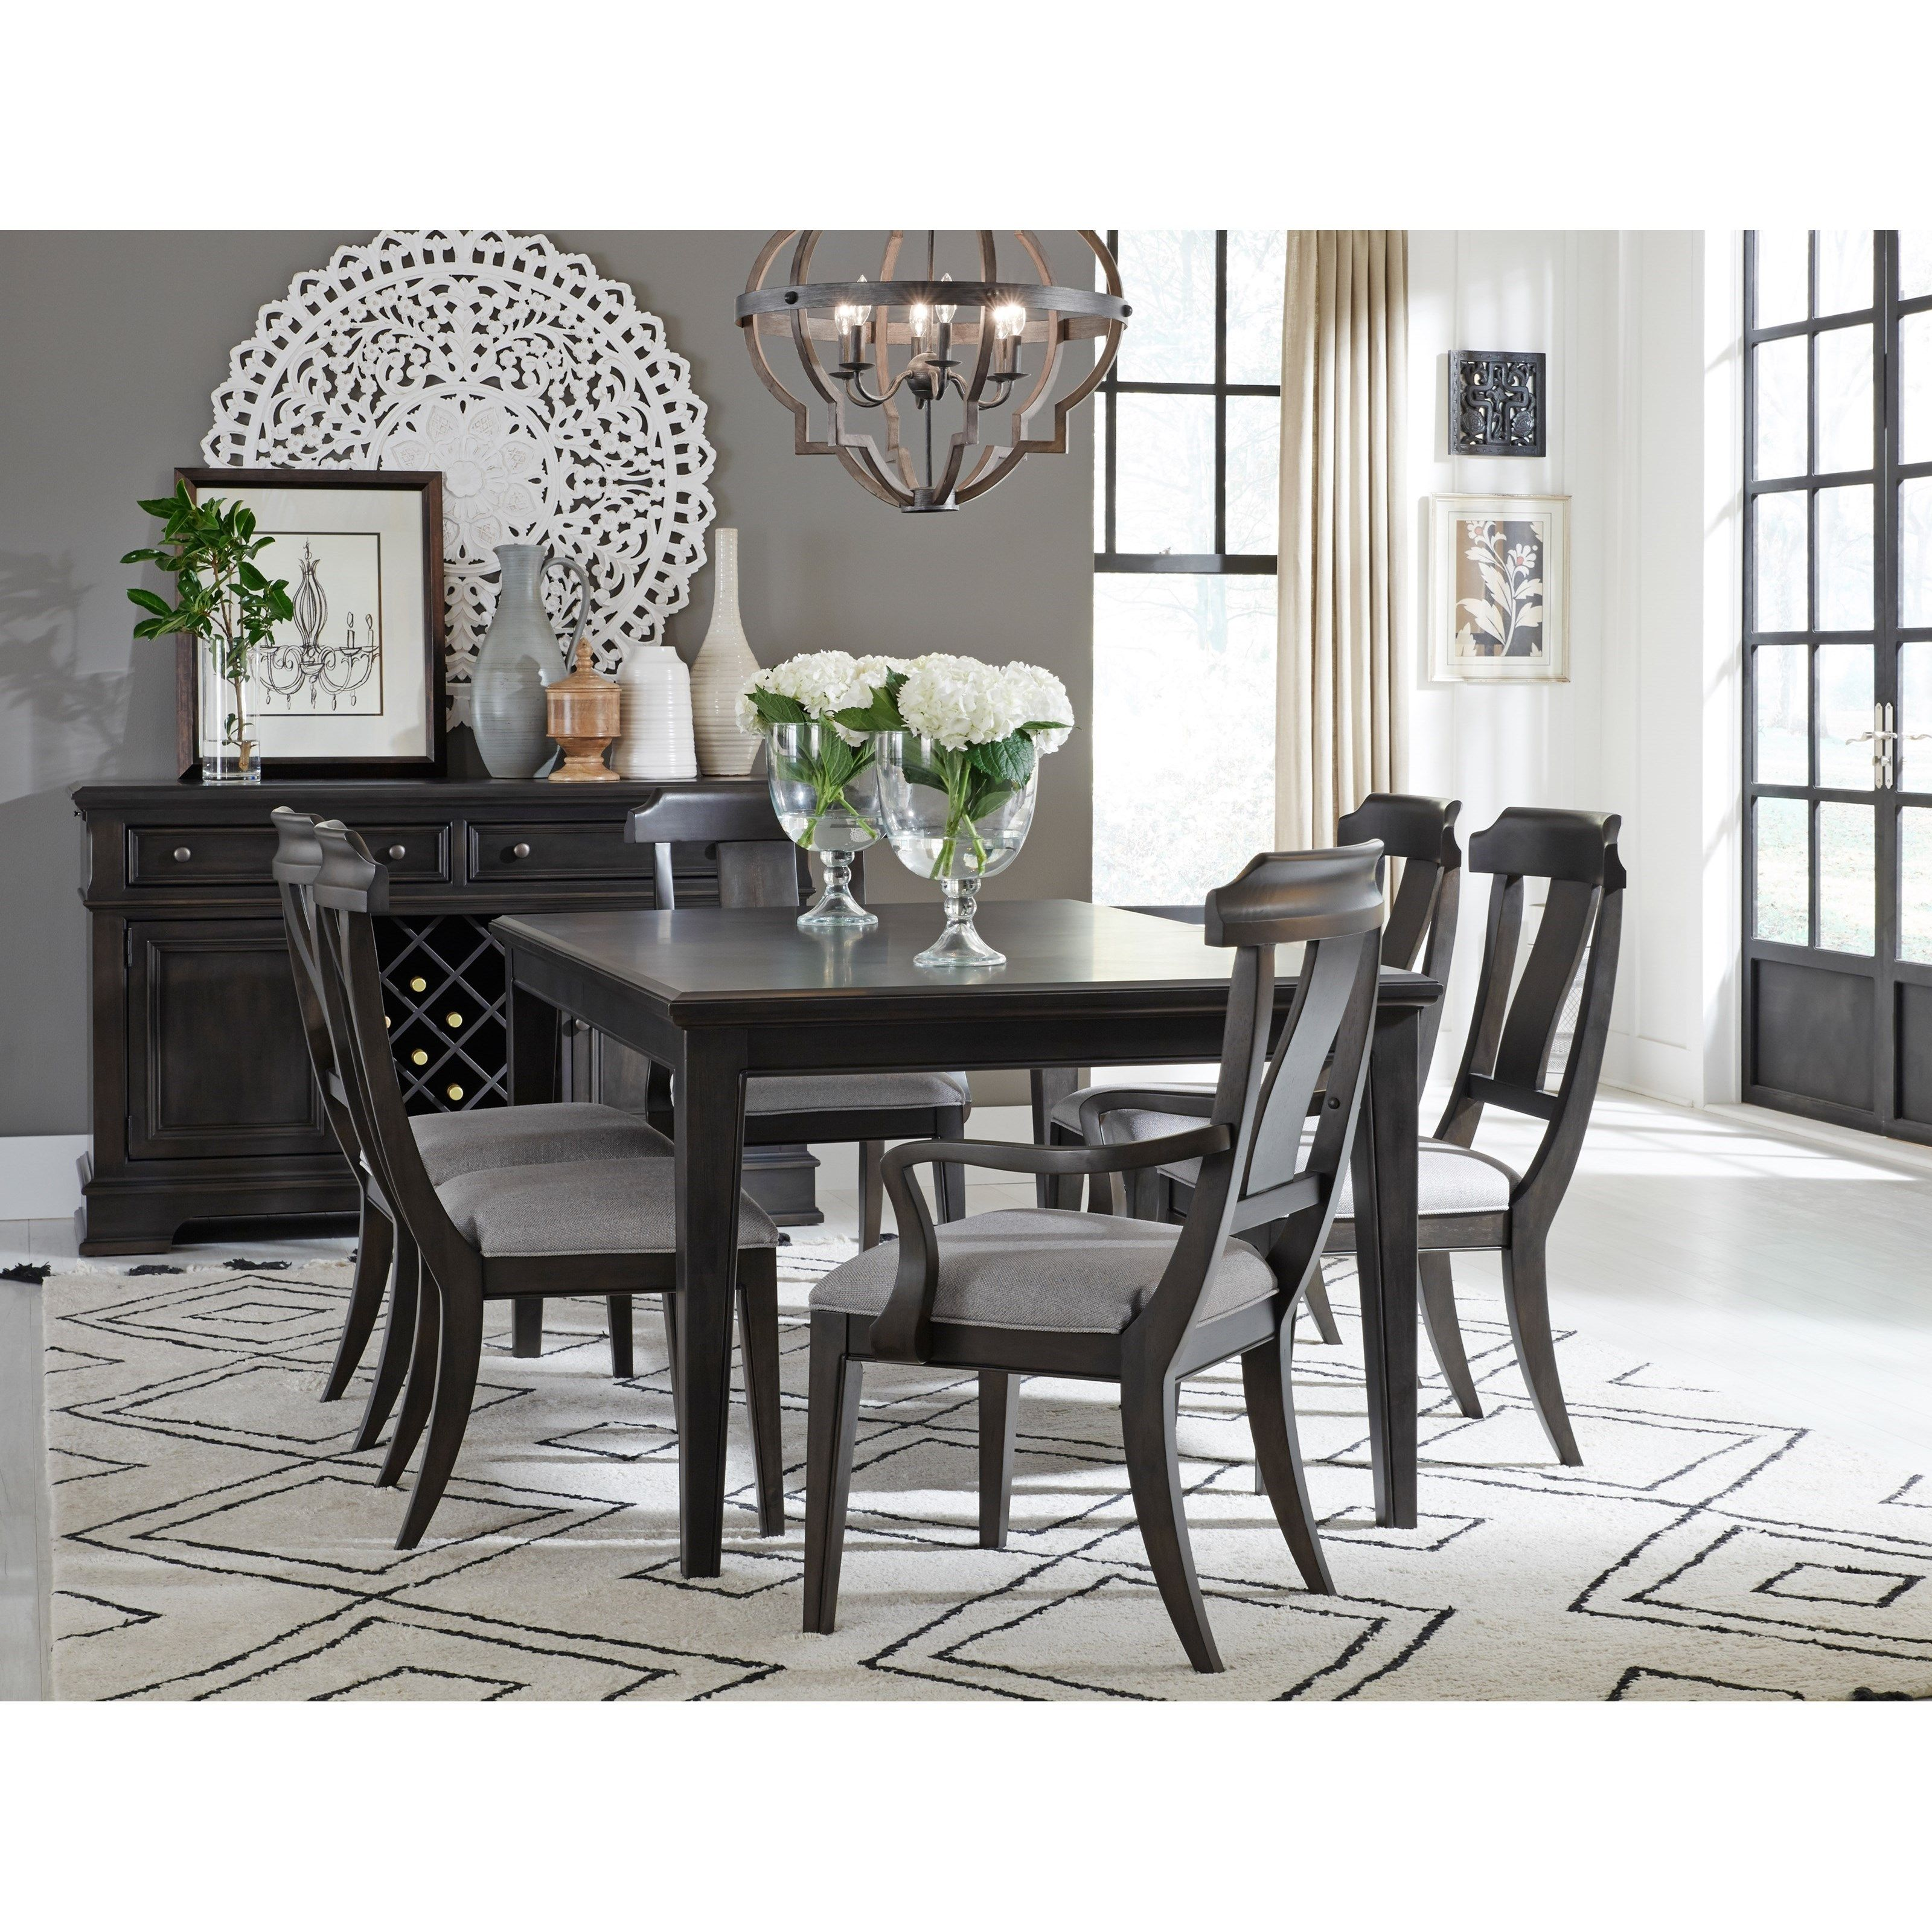 Formal Dining Group By Legacy Classic Wolf Furniture Dining Room Design Interior Design Dining Room Luxury Dining Room Dining rooms legacy classic